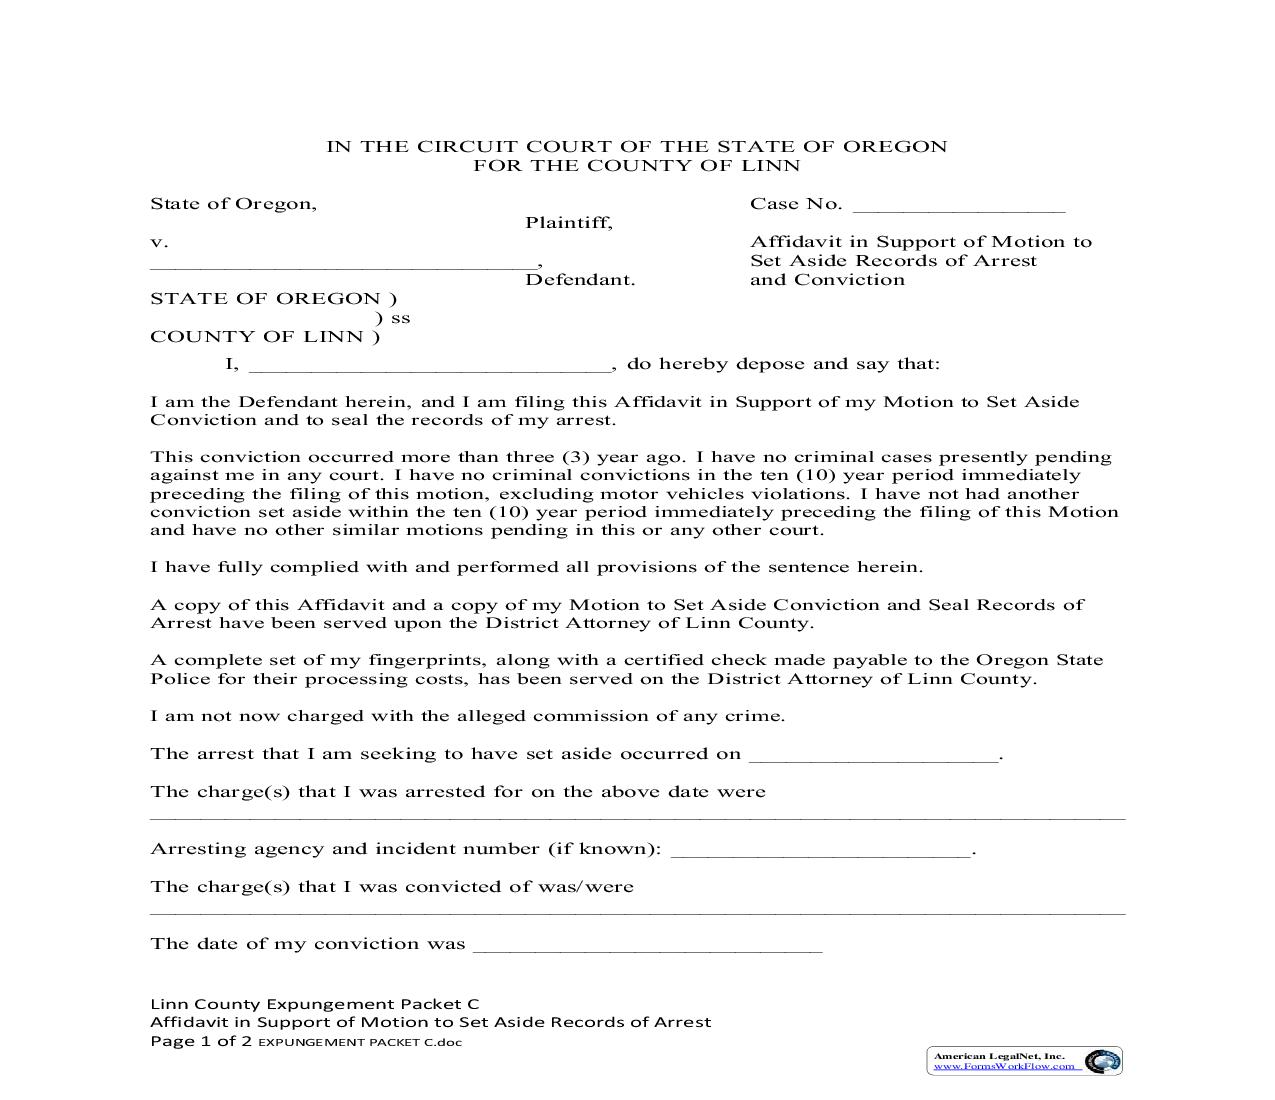 Affidavit In Support Of Motion To Set Aside Conviction And Seal Records Of Arrest {C} | Pdf Fpdf Doc Docx | Oregon